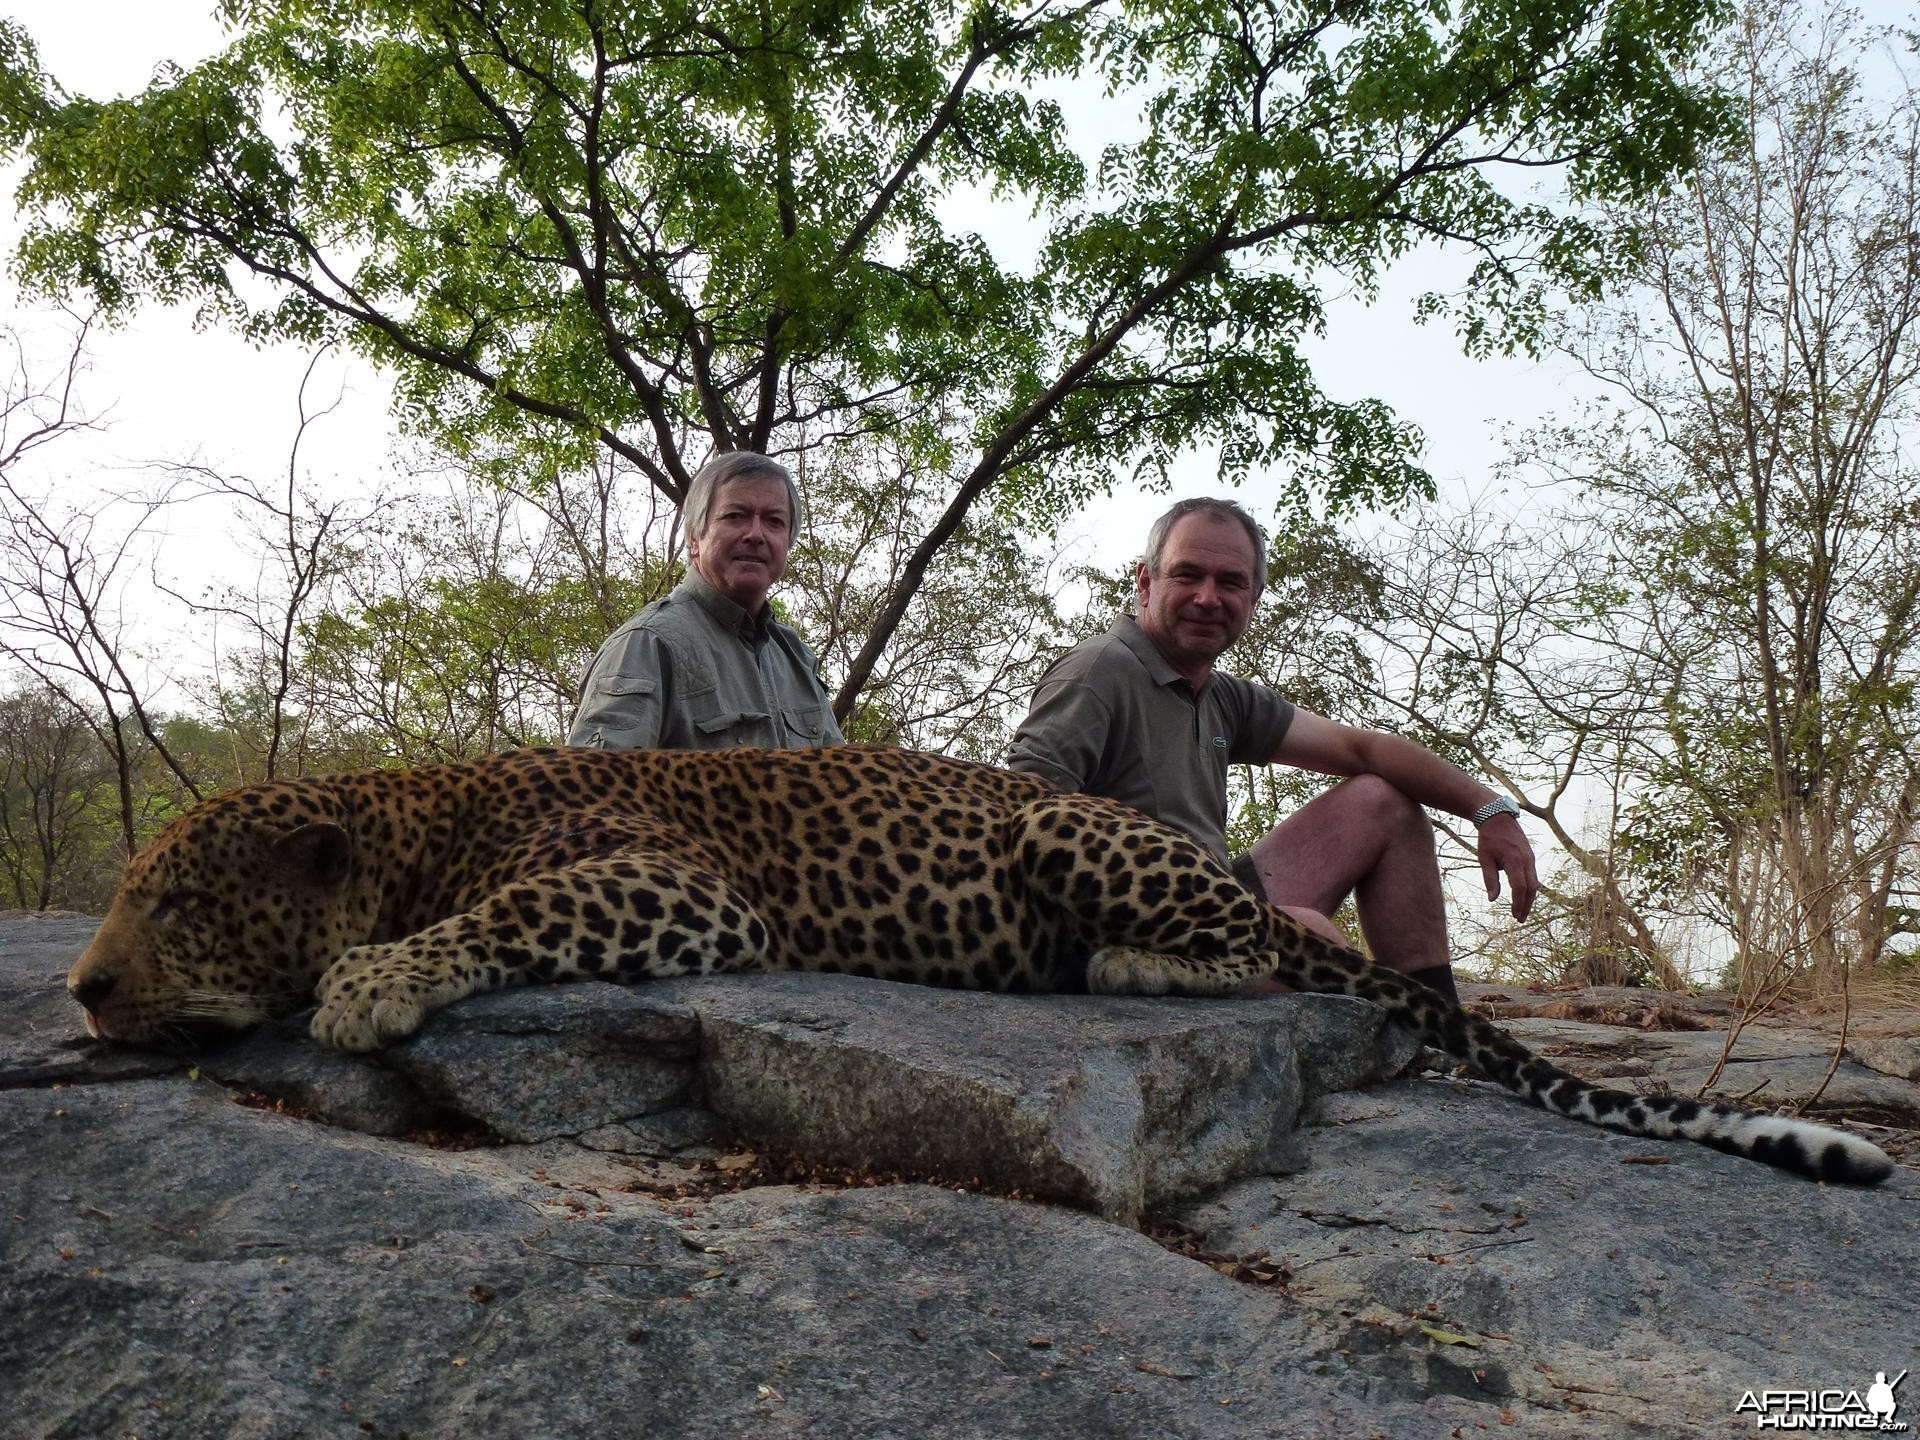 Leopard hunted in Central African Republic with Rudy Lubin Safaris